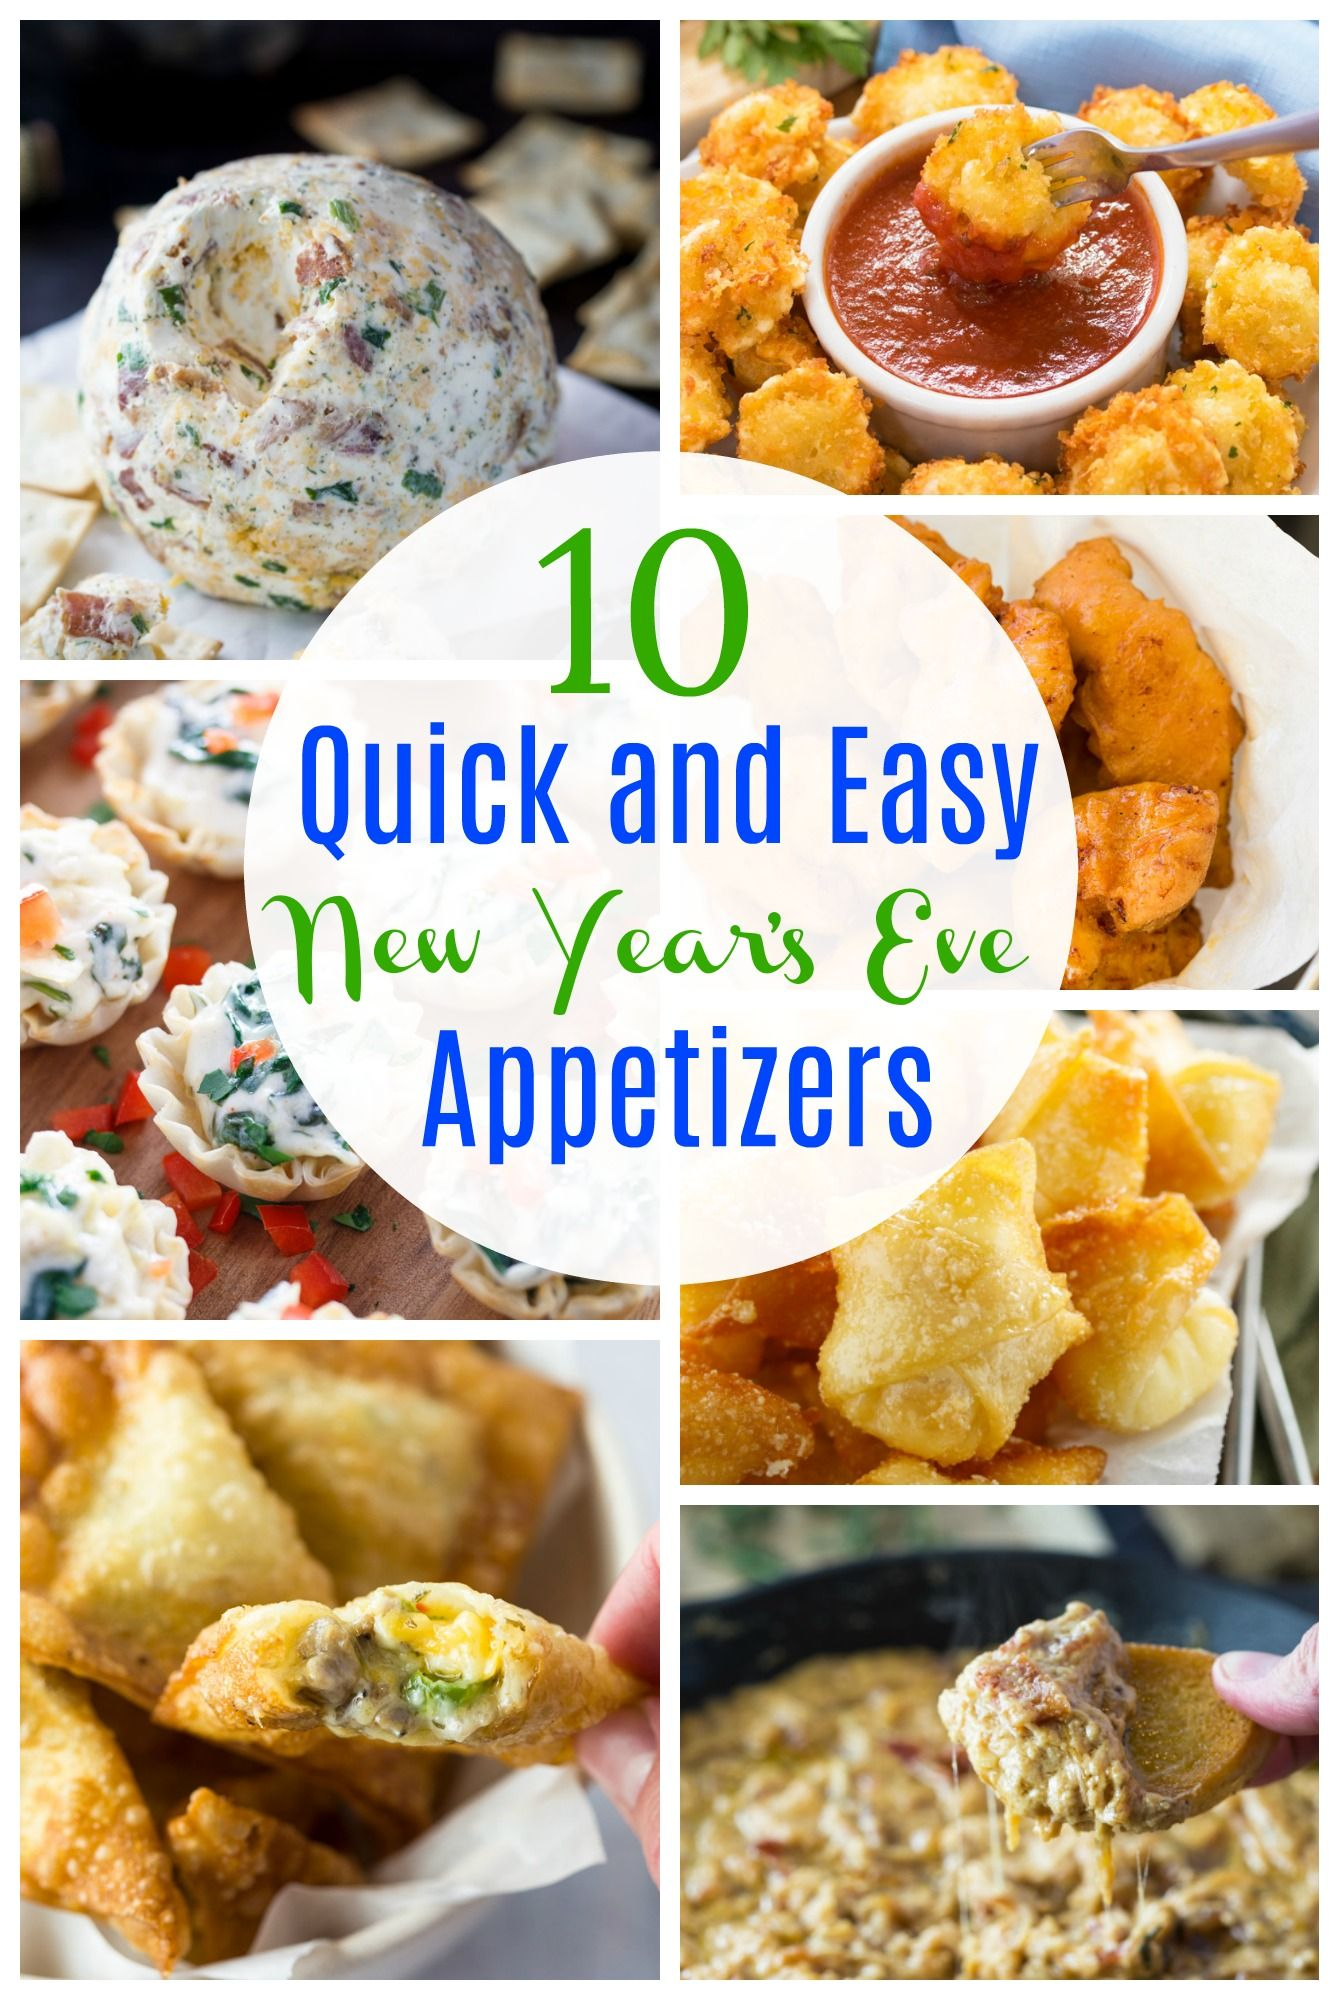 10 Quick And Easy New Years Eve Appetizers